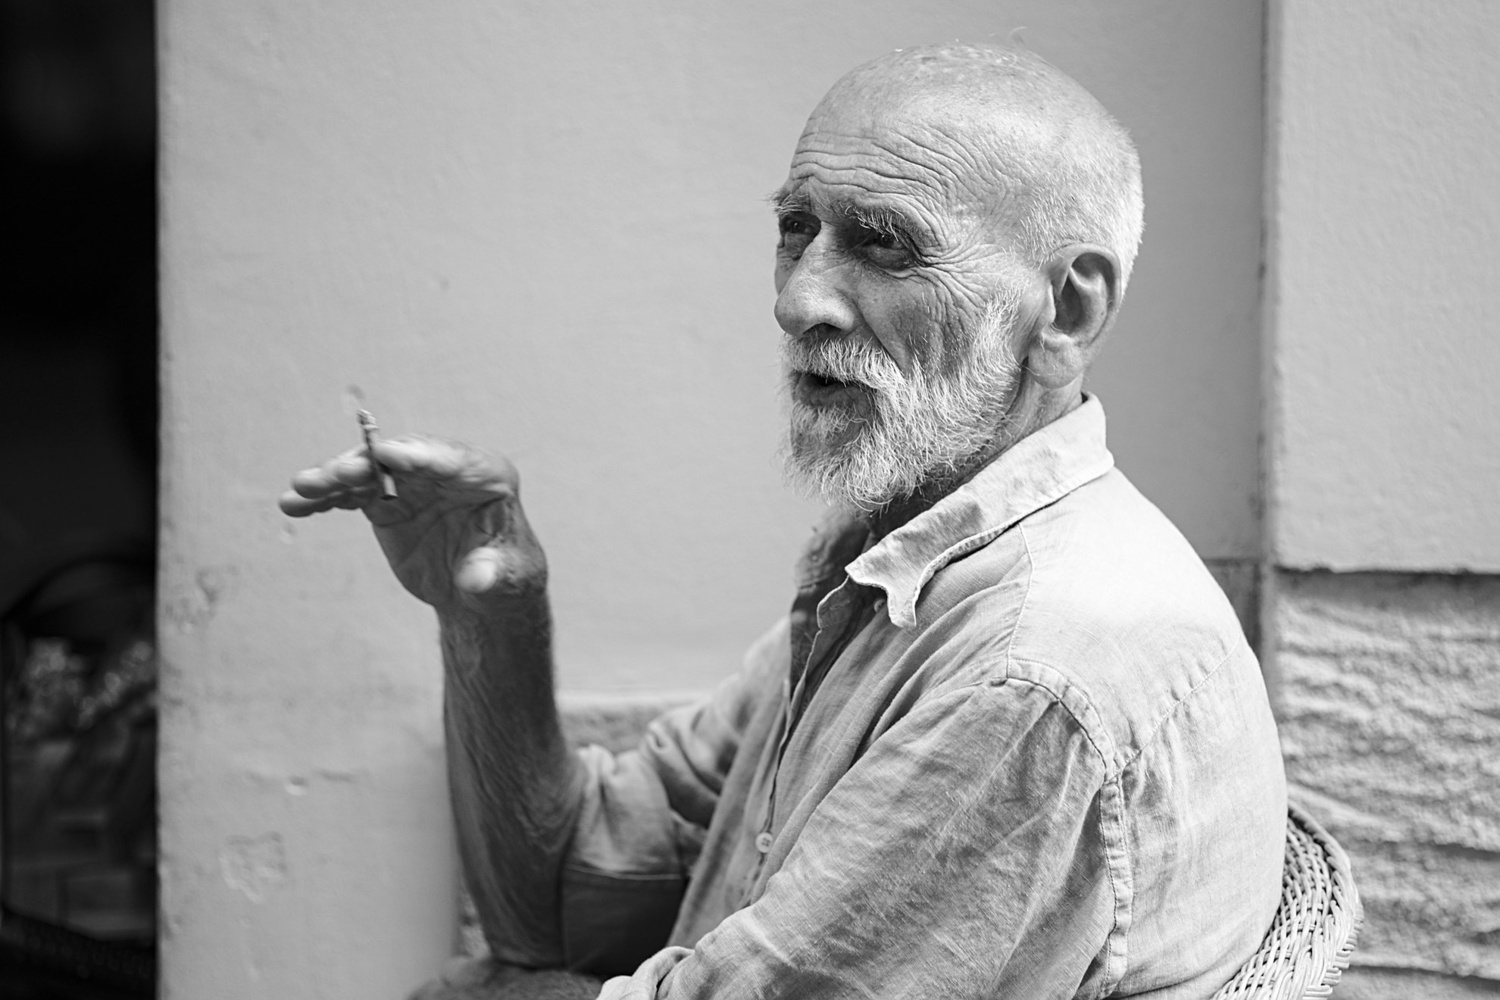 Old man in Italy by Jeena Paradies